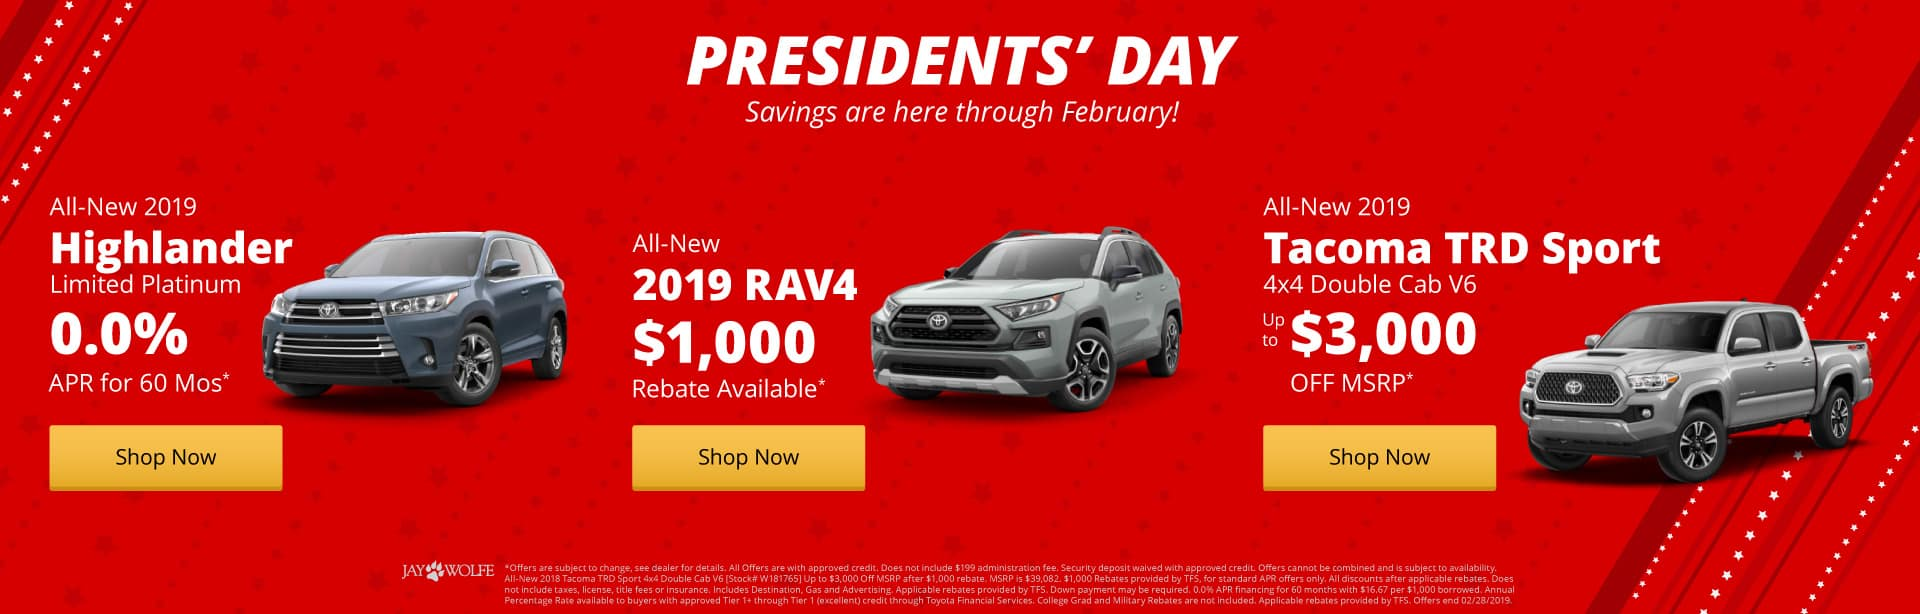 Presidents Day Savings are here!